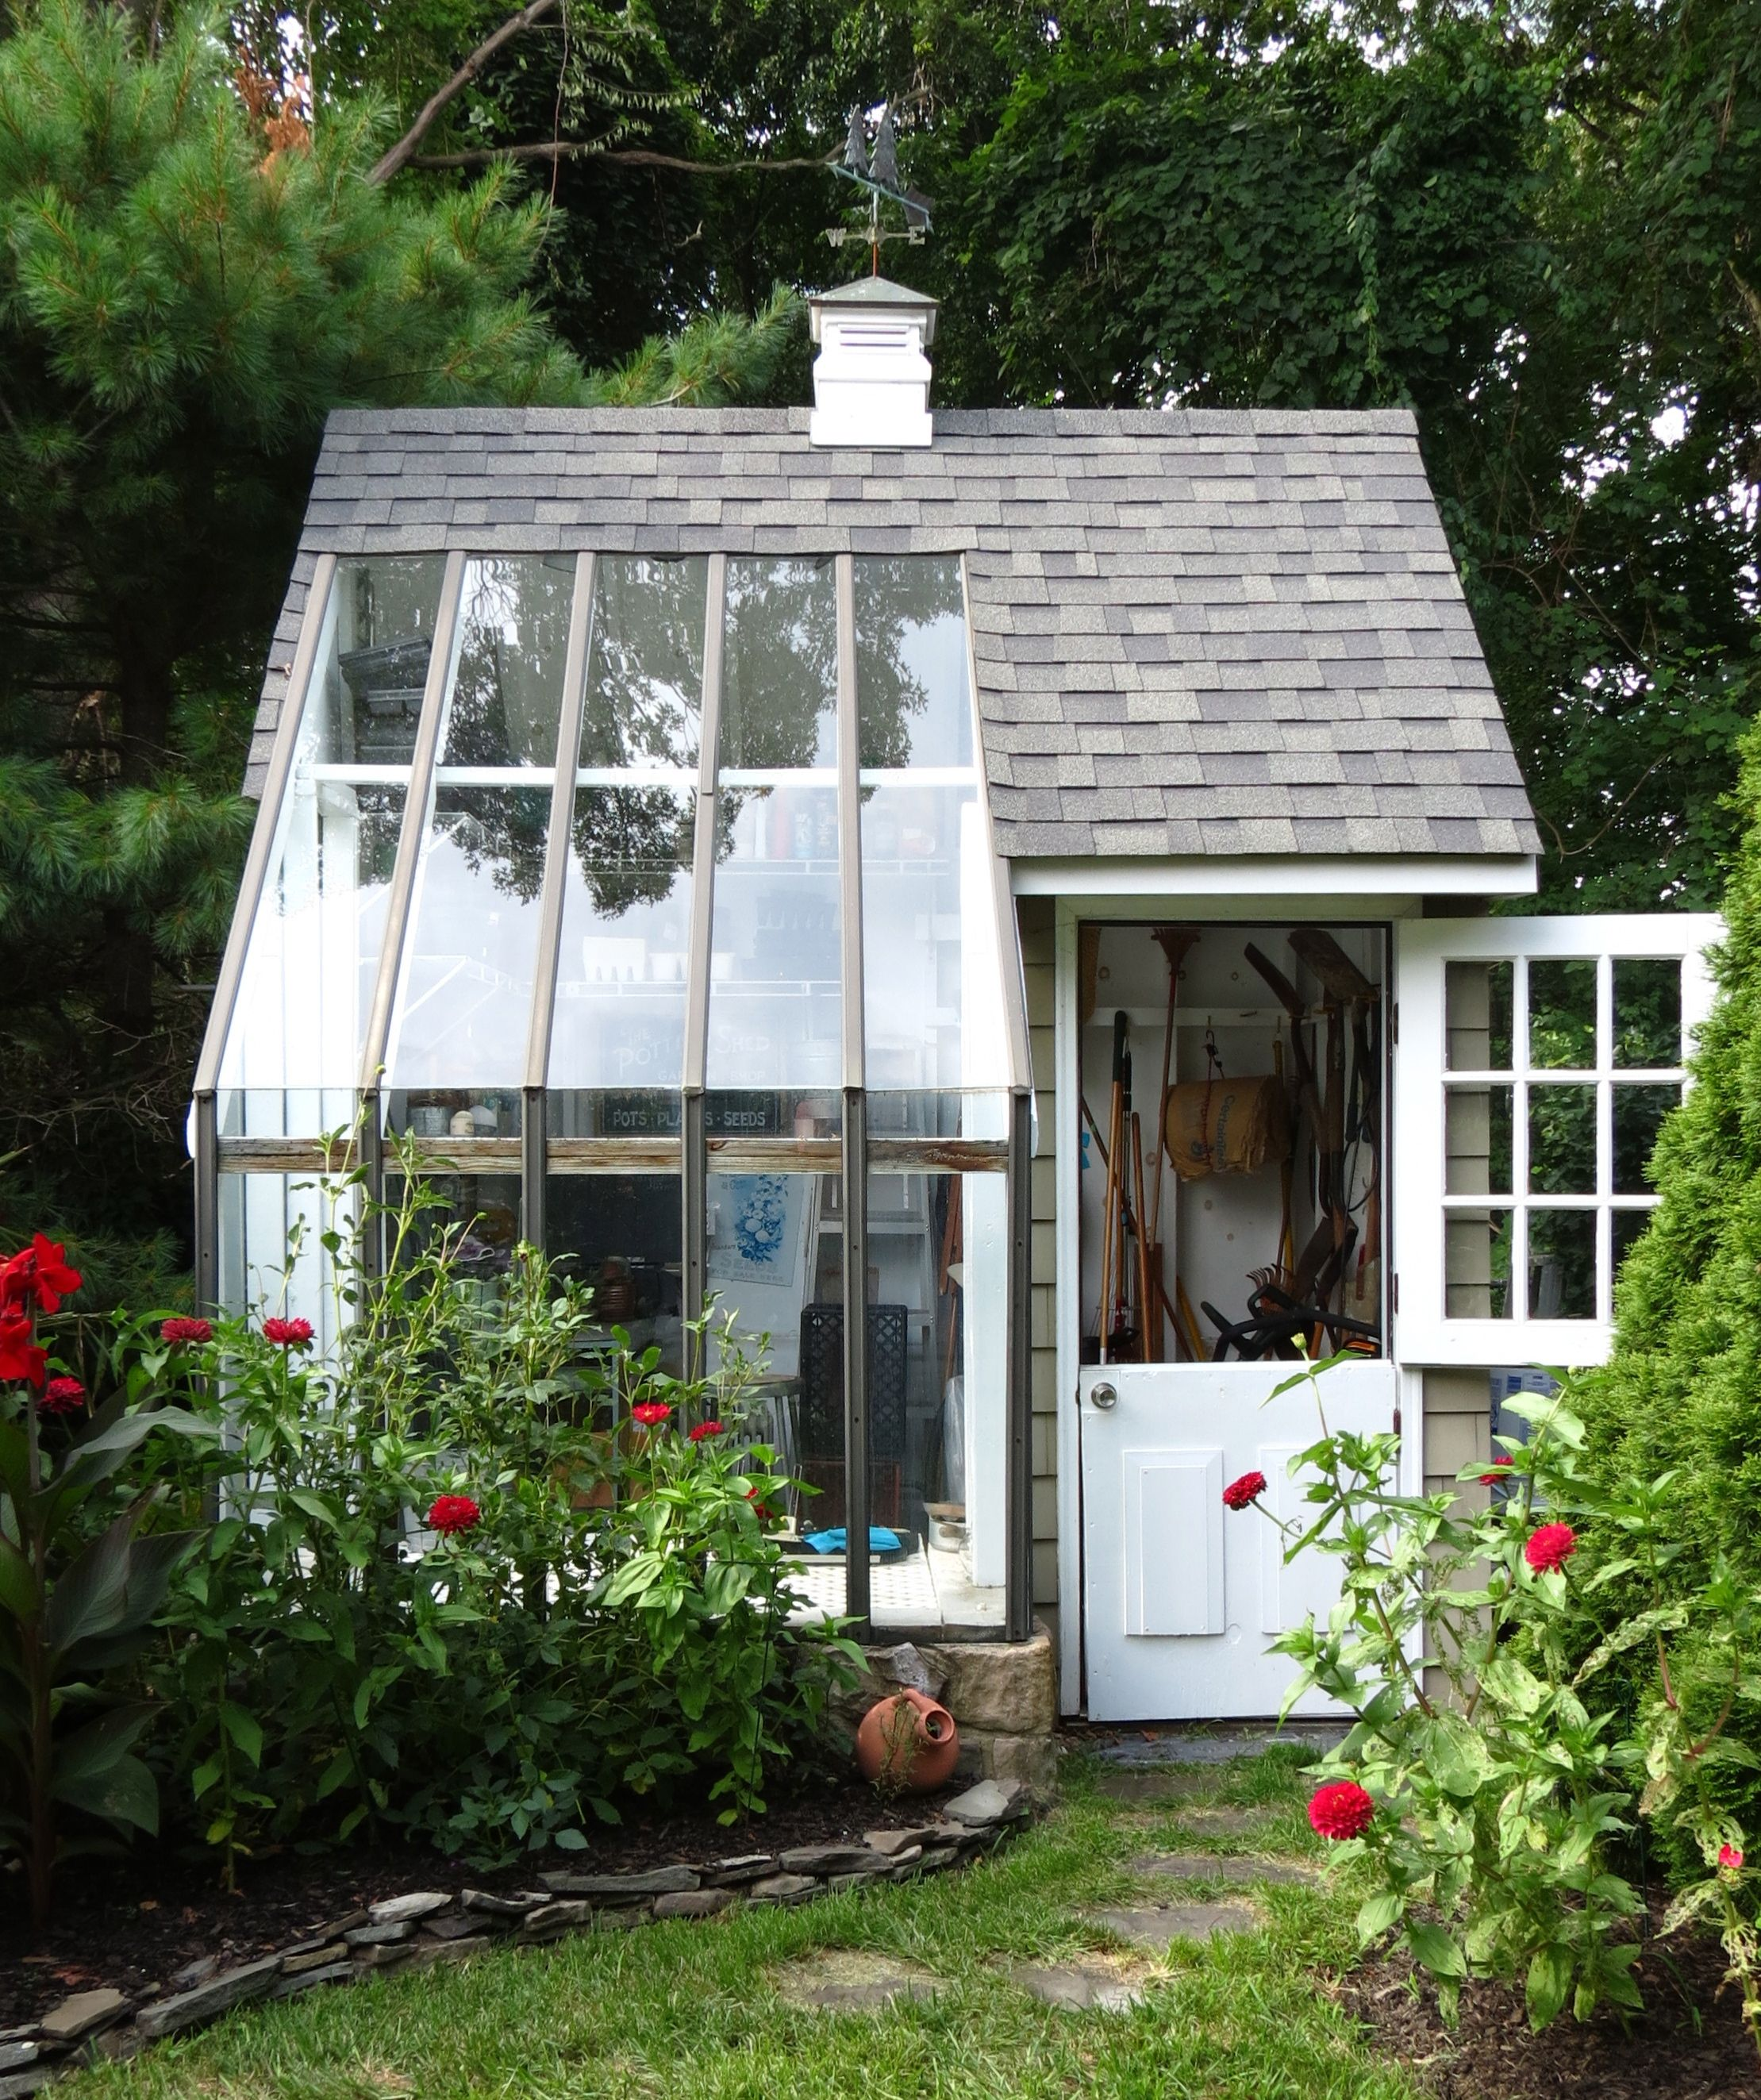 fairytale backyards 30 magical garden sheds - Garden Sheds With Greenhouse